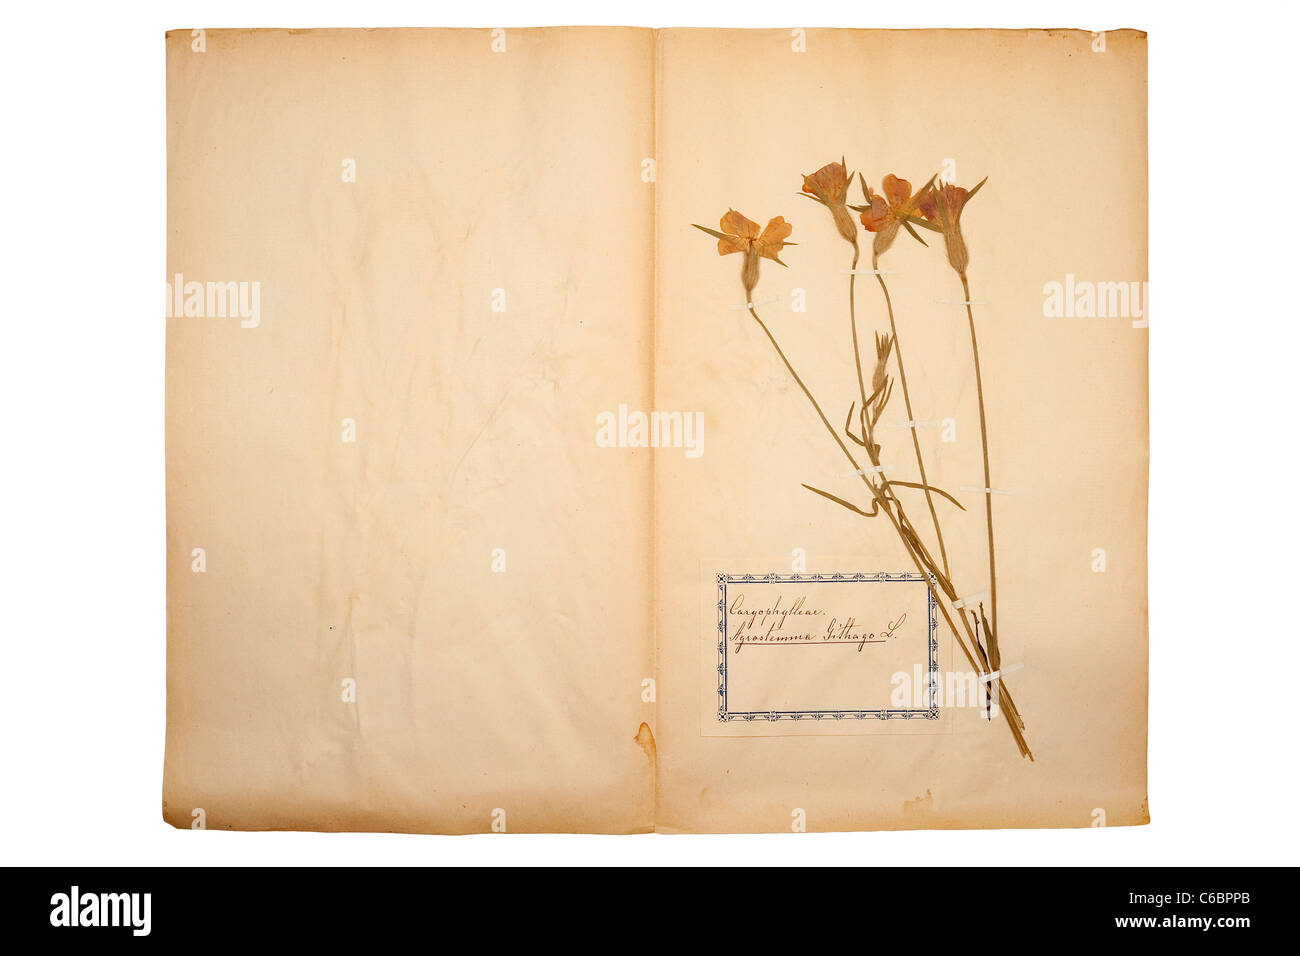 Pressed flower on old gone yellow paper stock photo 38368019 alamy pressed flower on old gone yellow paper mightylinksfo